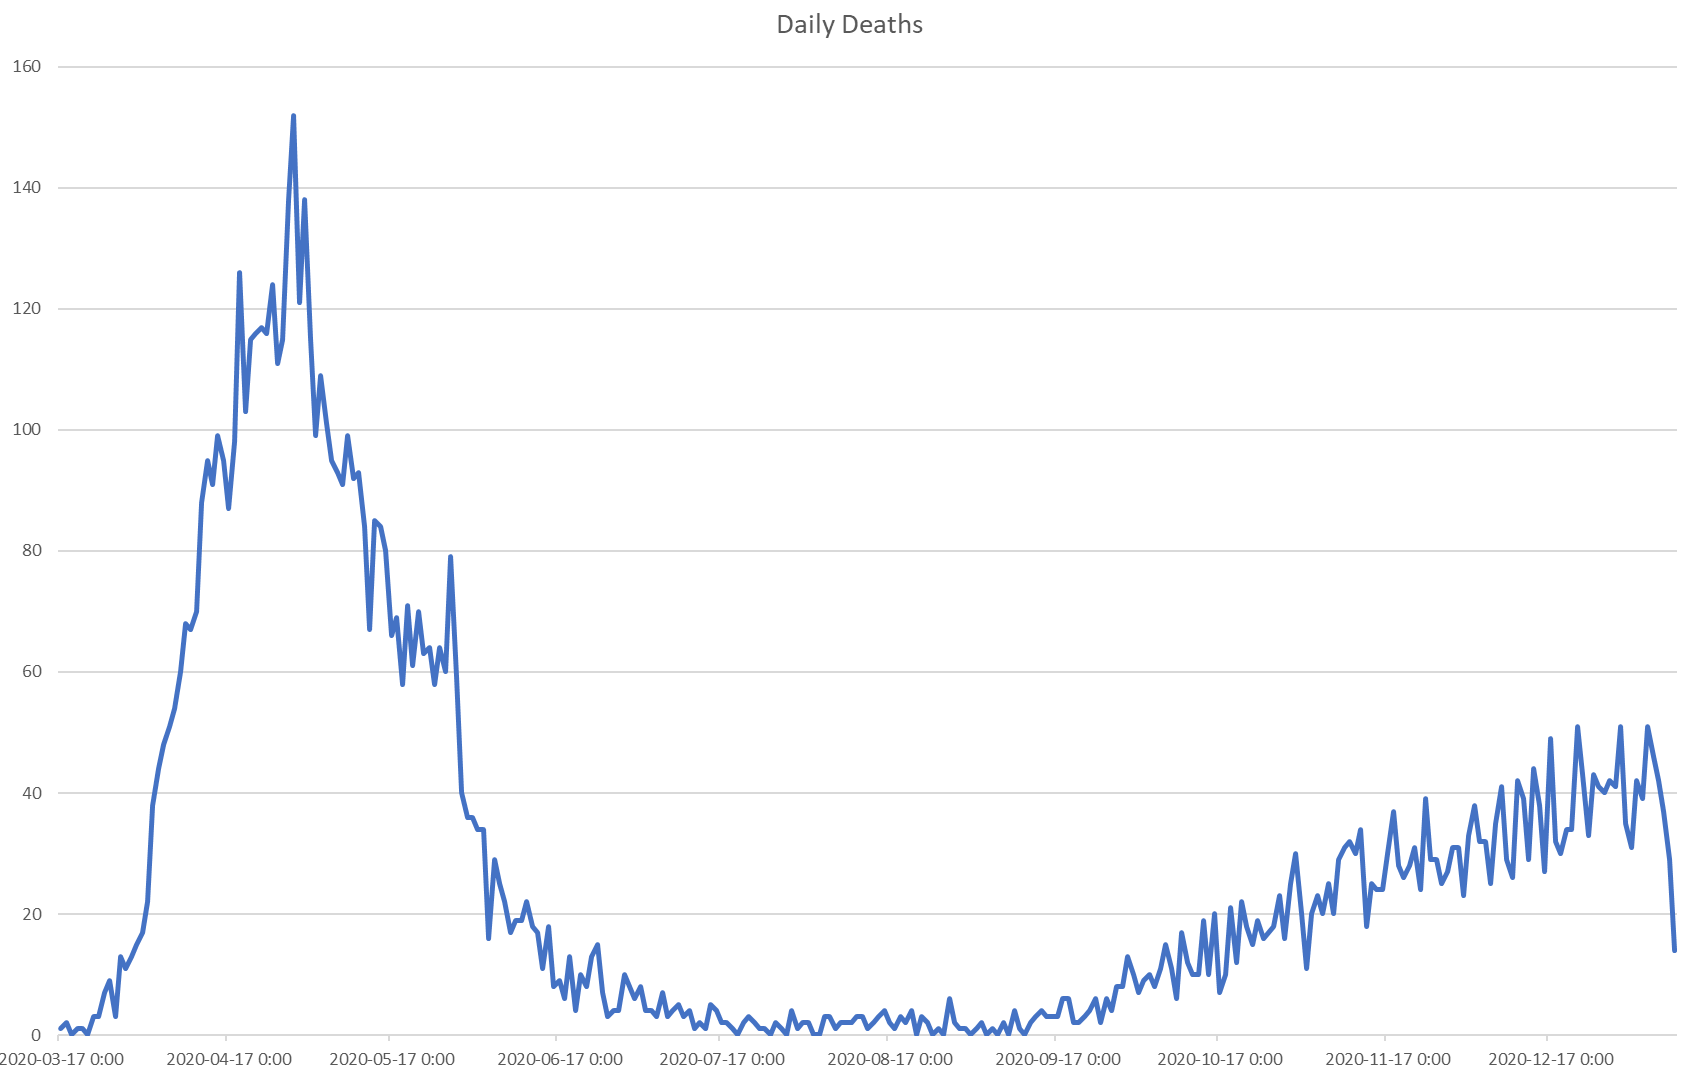 INSPQ_daily_export_deaths_20210111.png